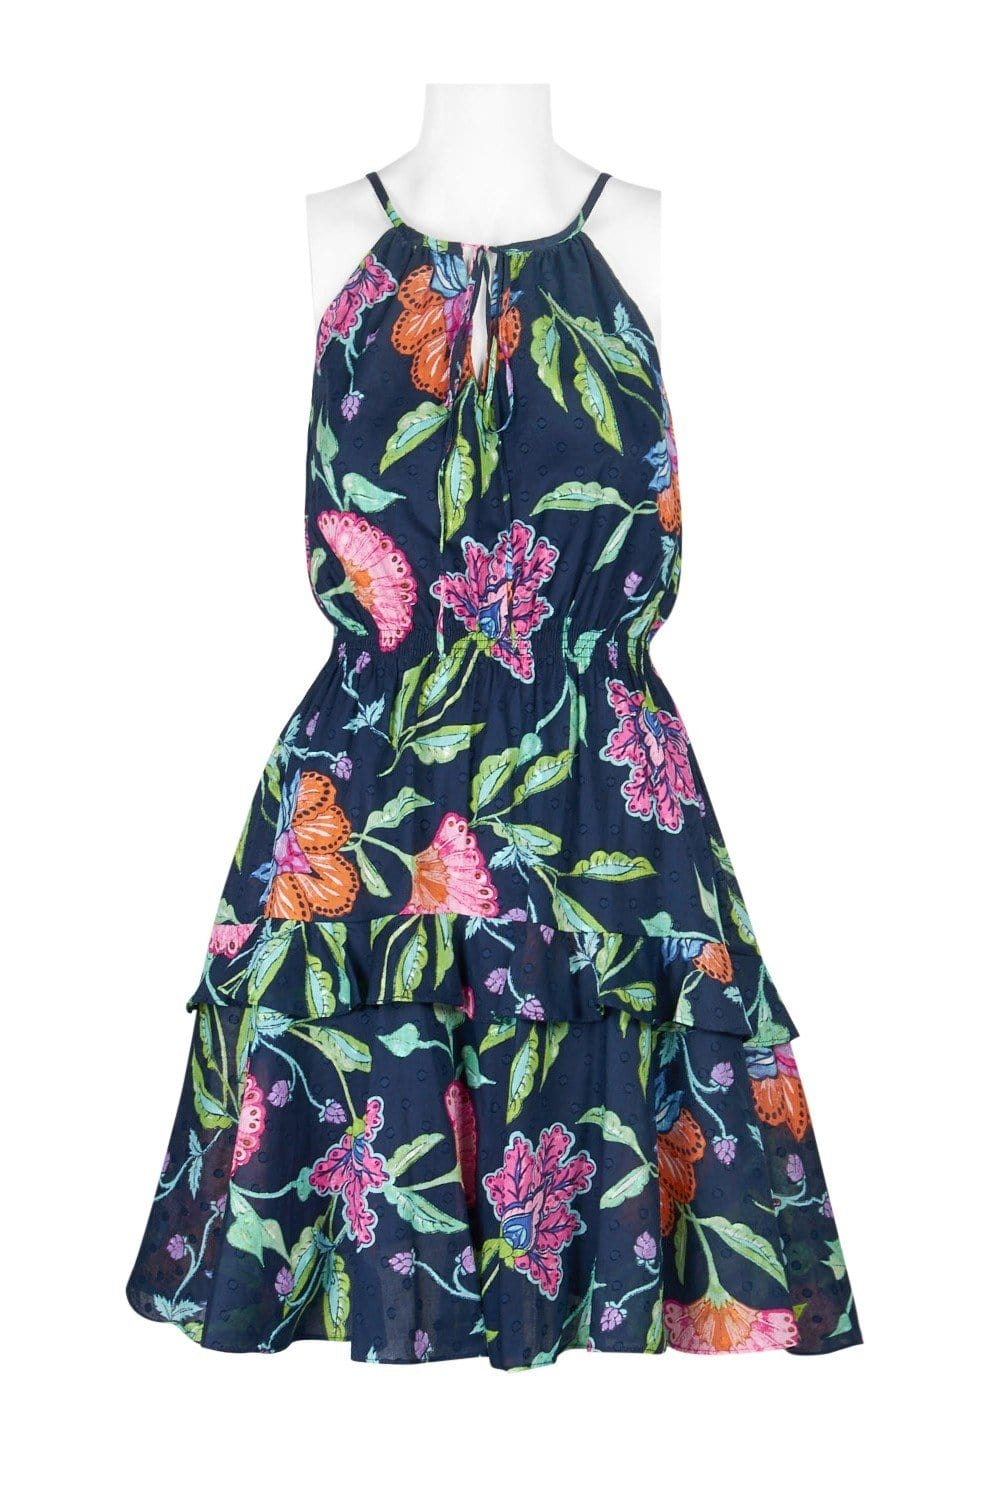 Taylor - 9682M Floral Print Tie Keyhole Front Dress In Blue and Floral